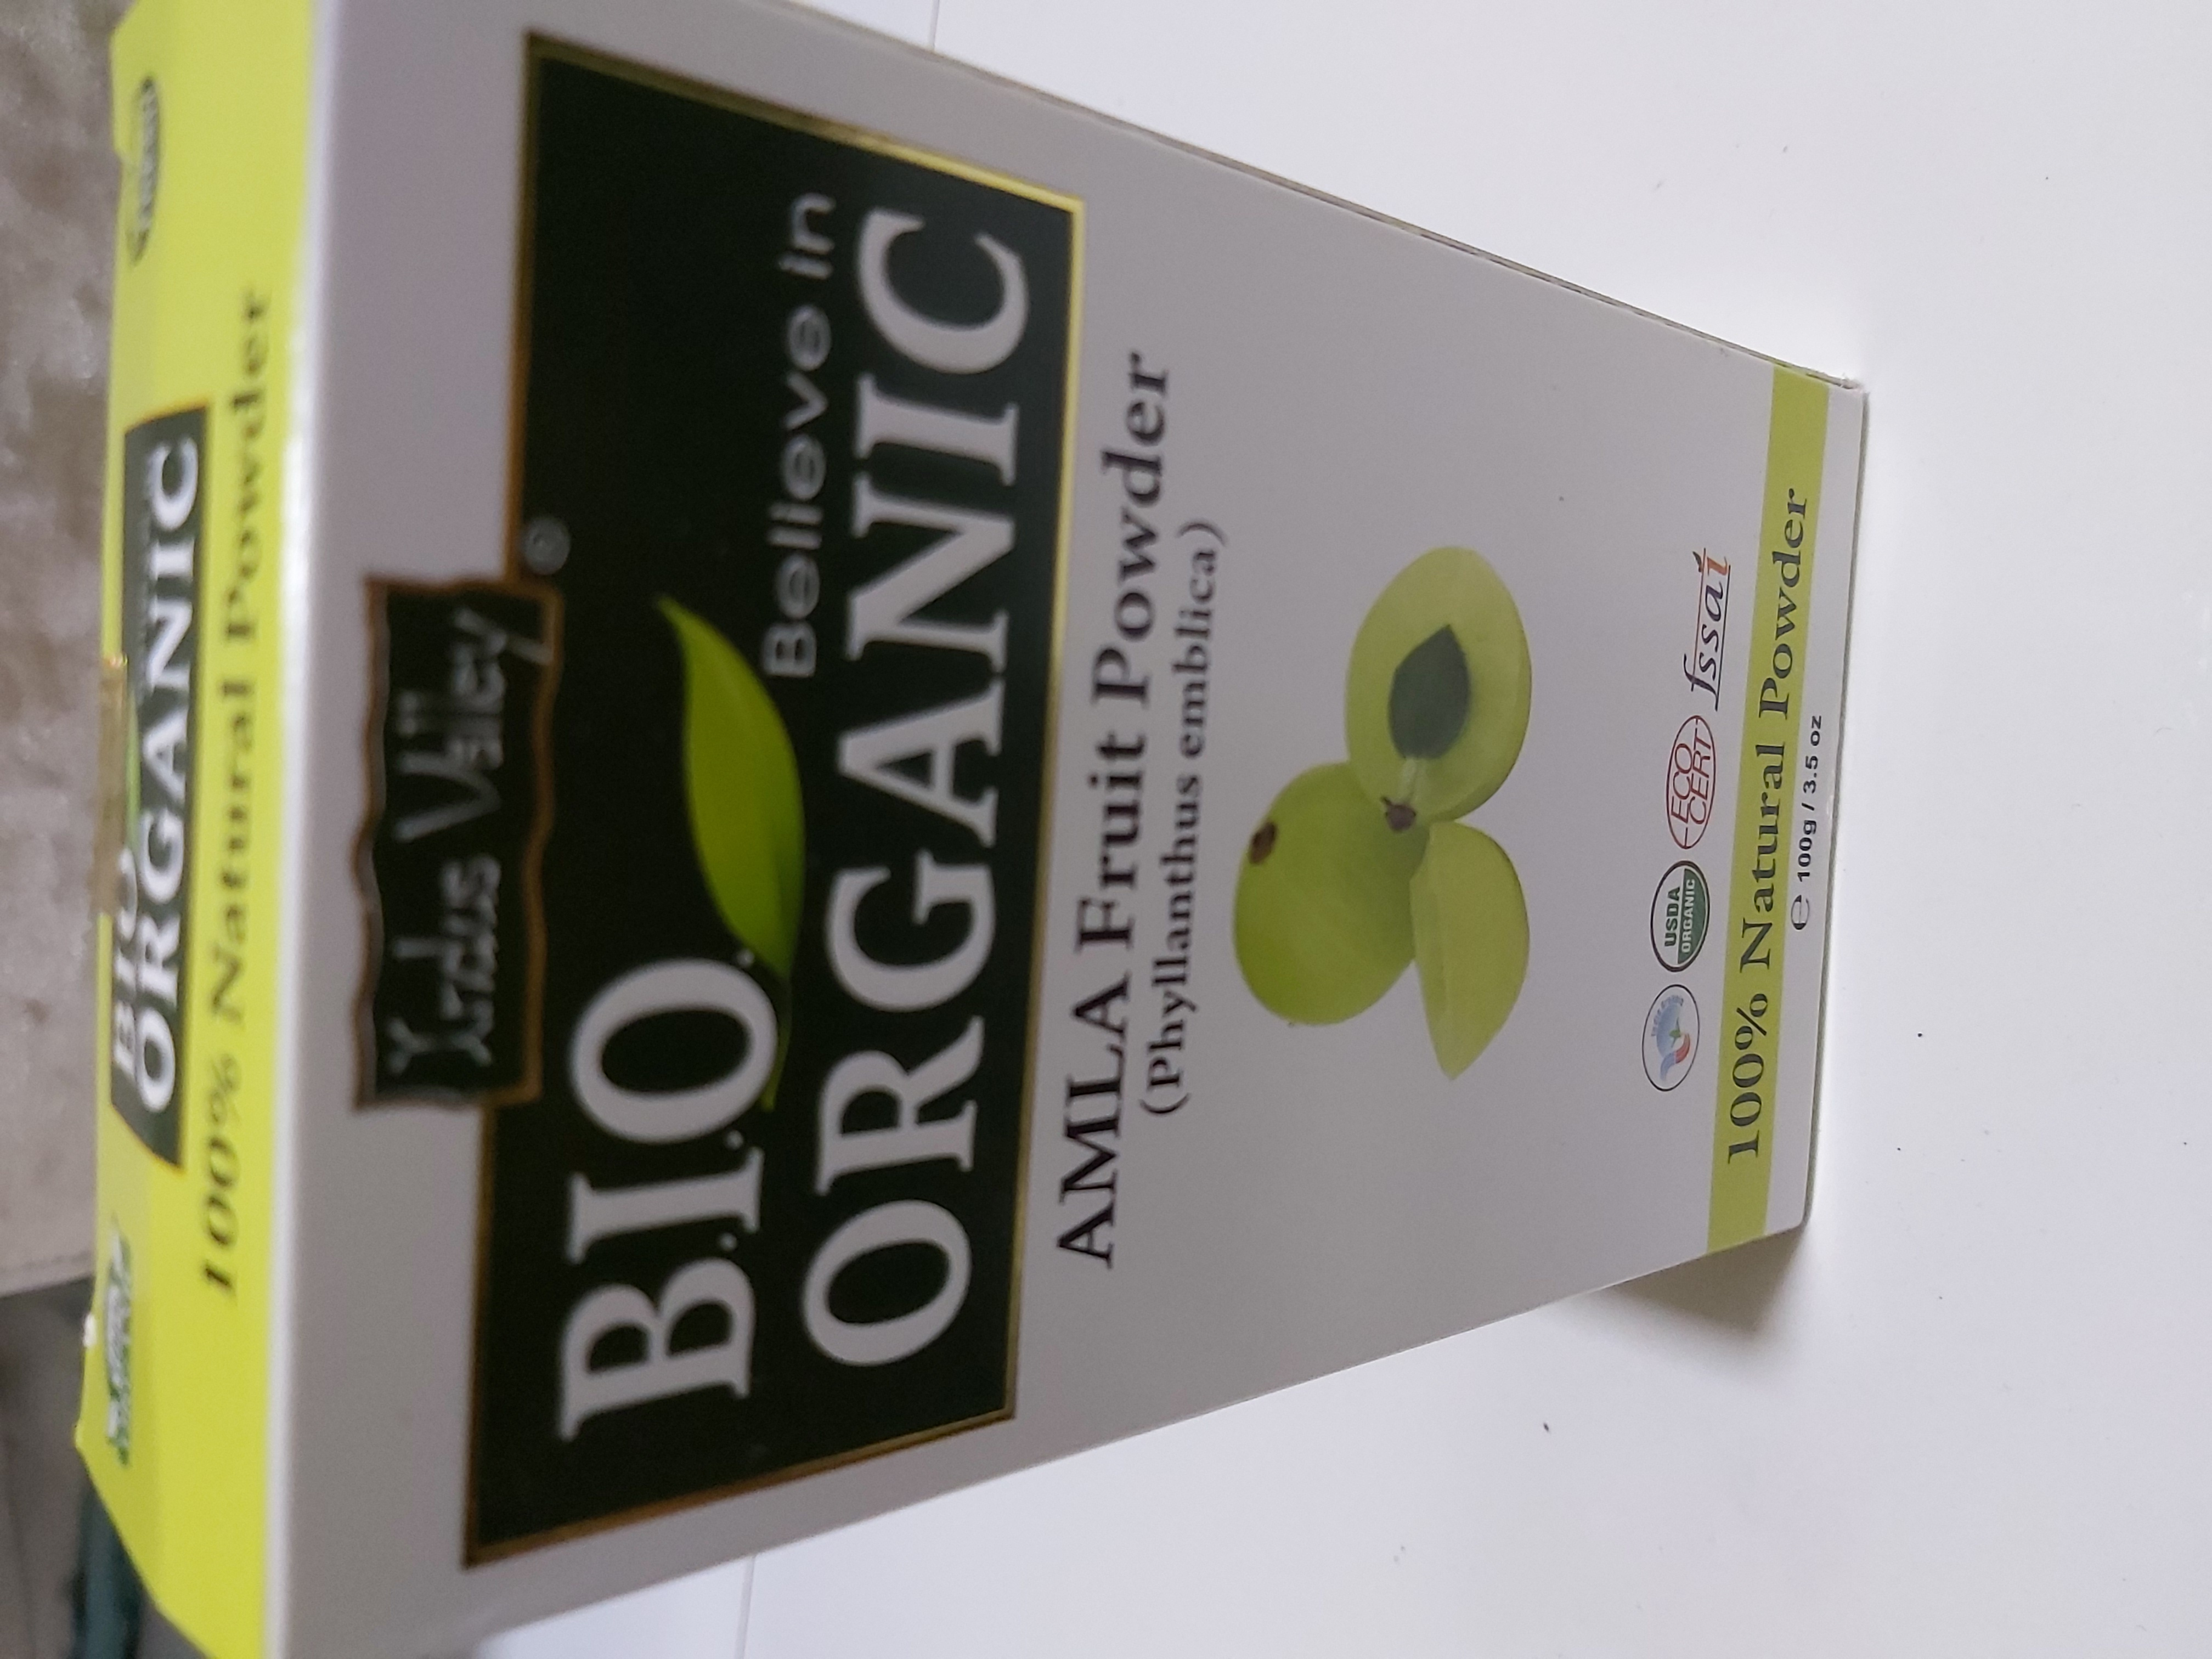 Indus Valley Bio Organic 100% Natural Amla Powder-Highly Recommended-By sneha_doshi